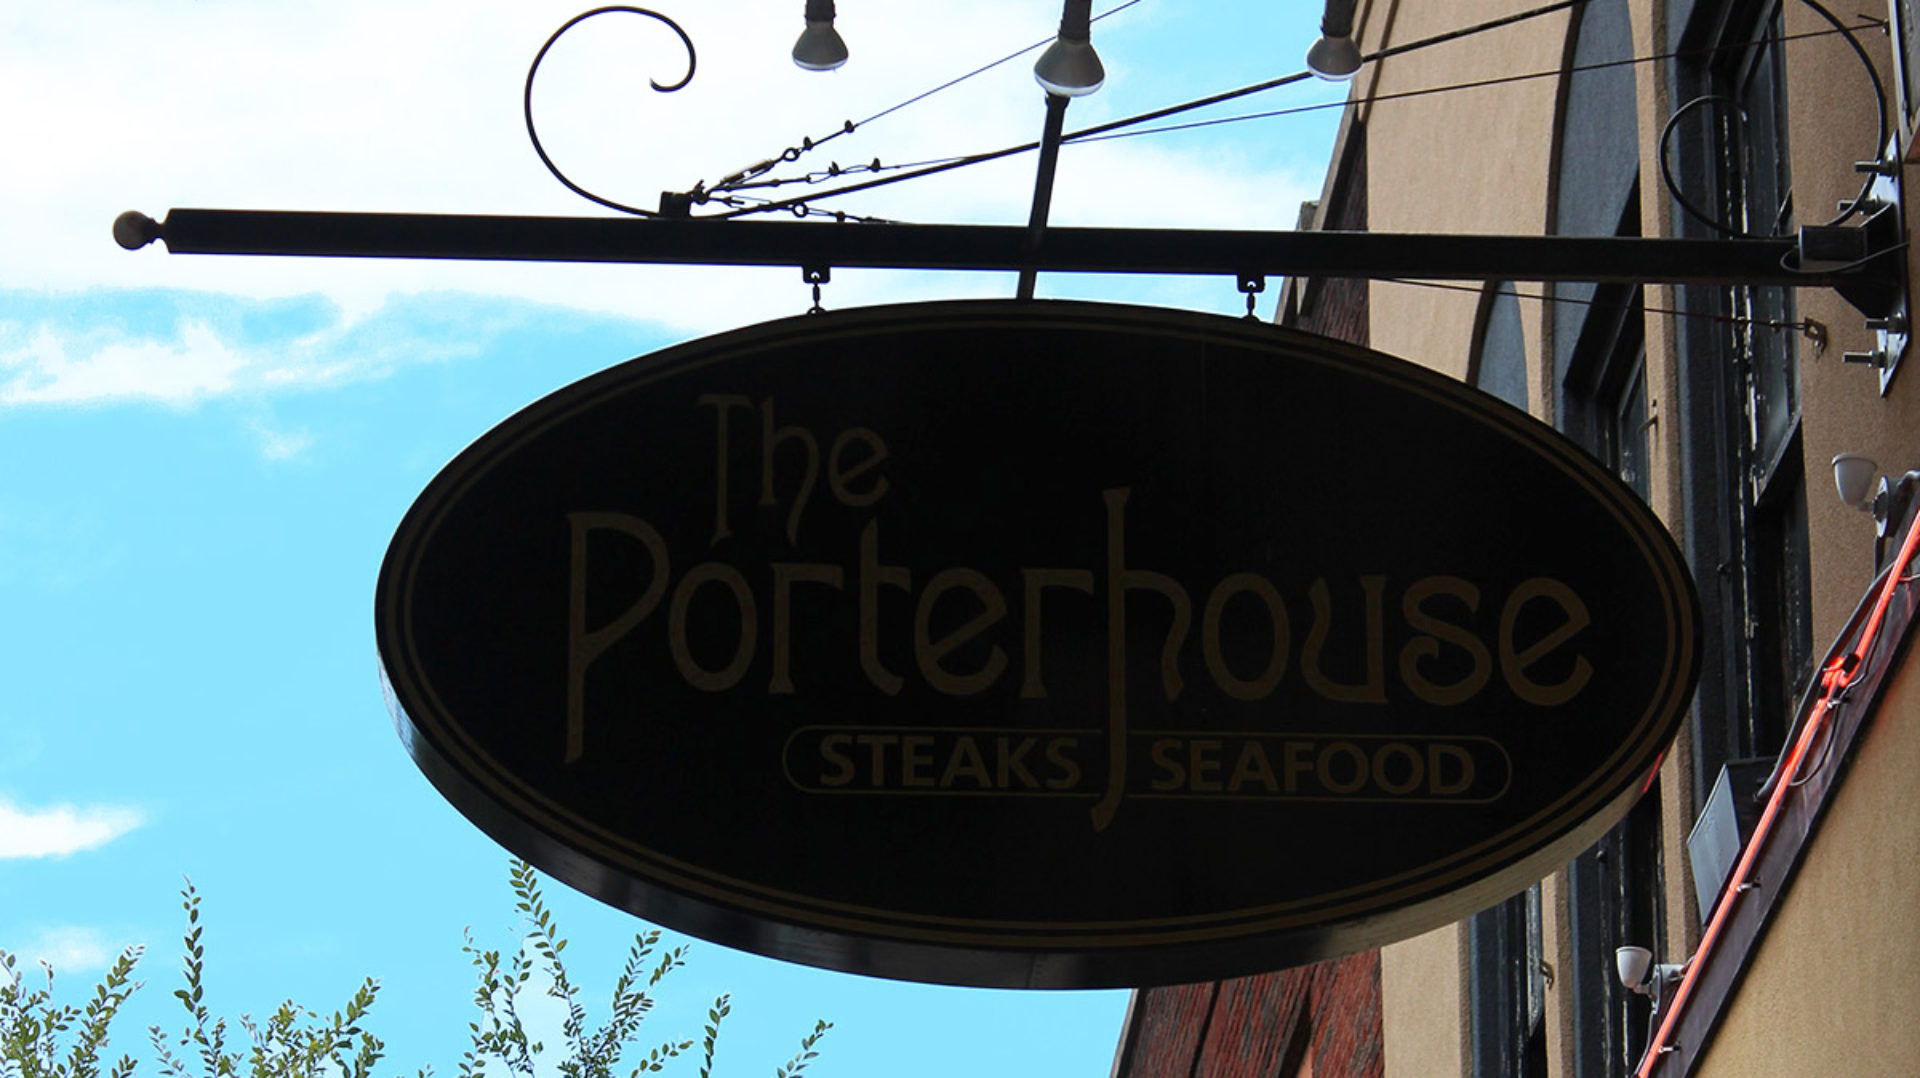 The Porterhouse Steaks and Seafood